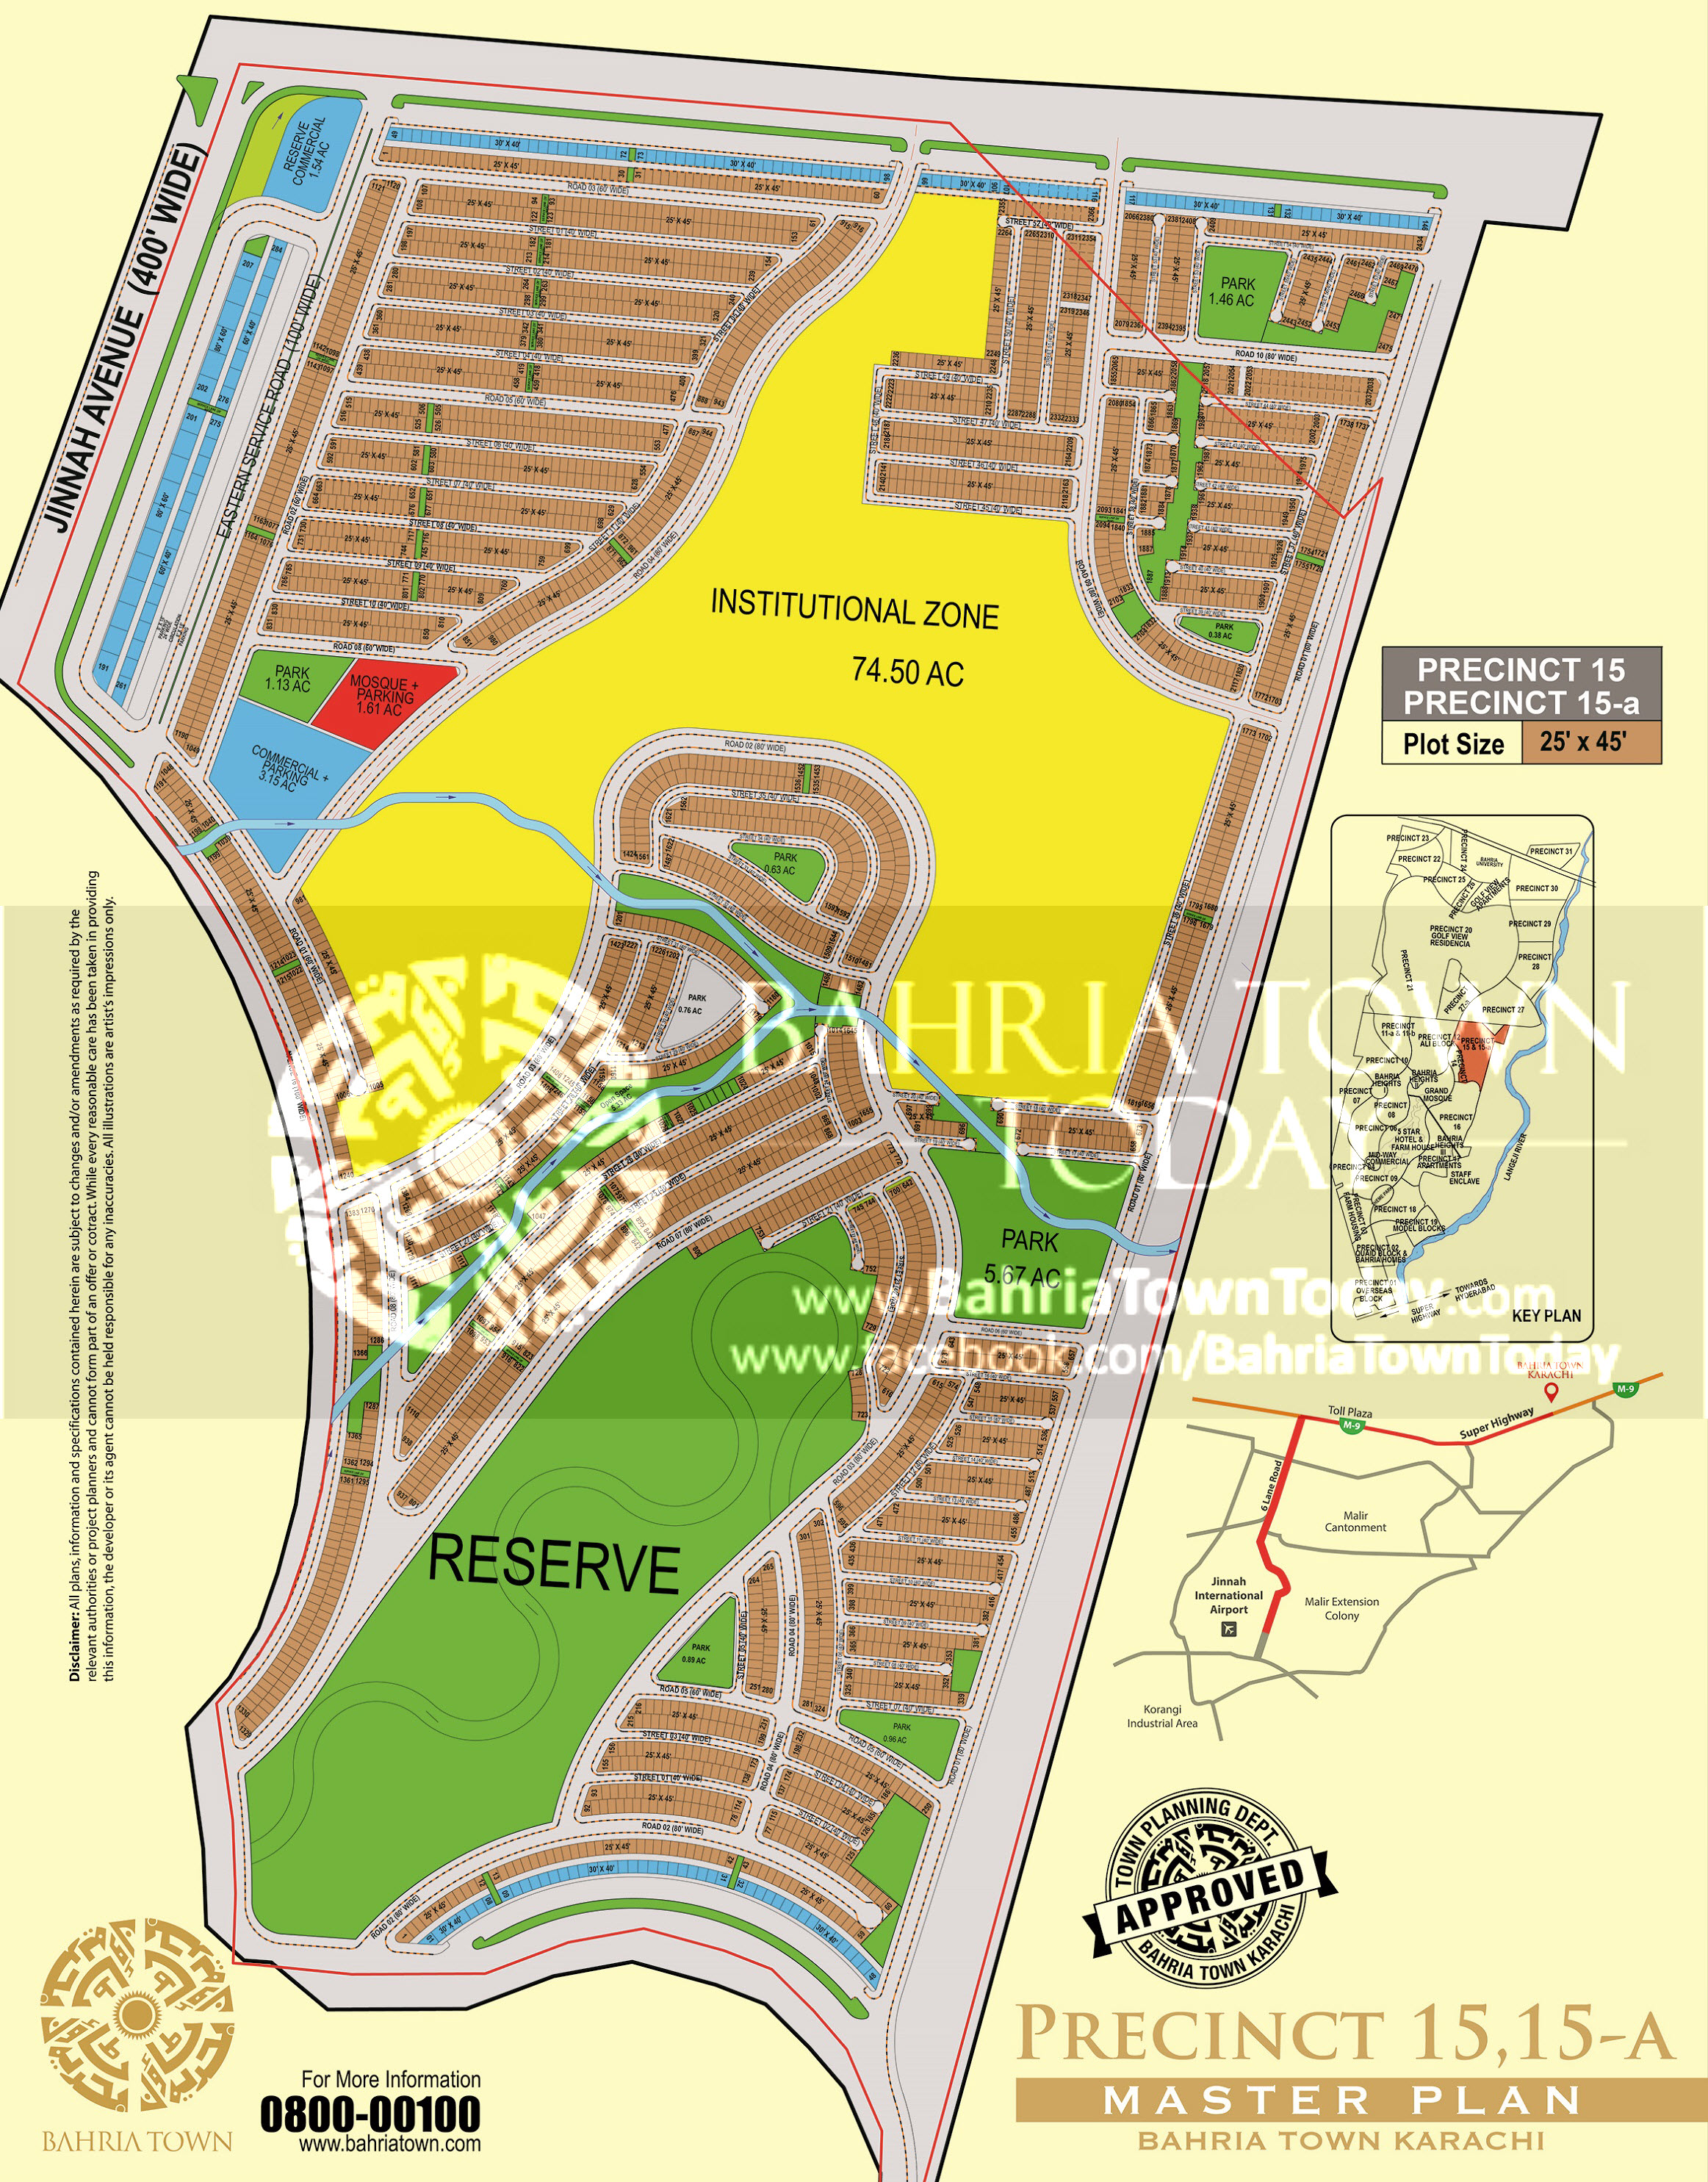 Bahria Town Karachi – Precinct 15 High Resolution Map